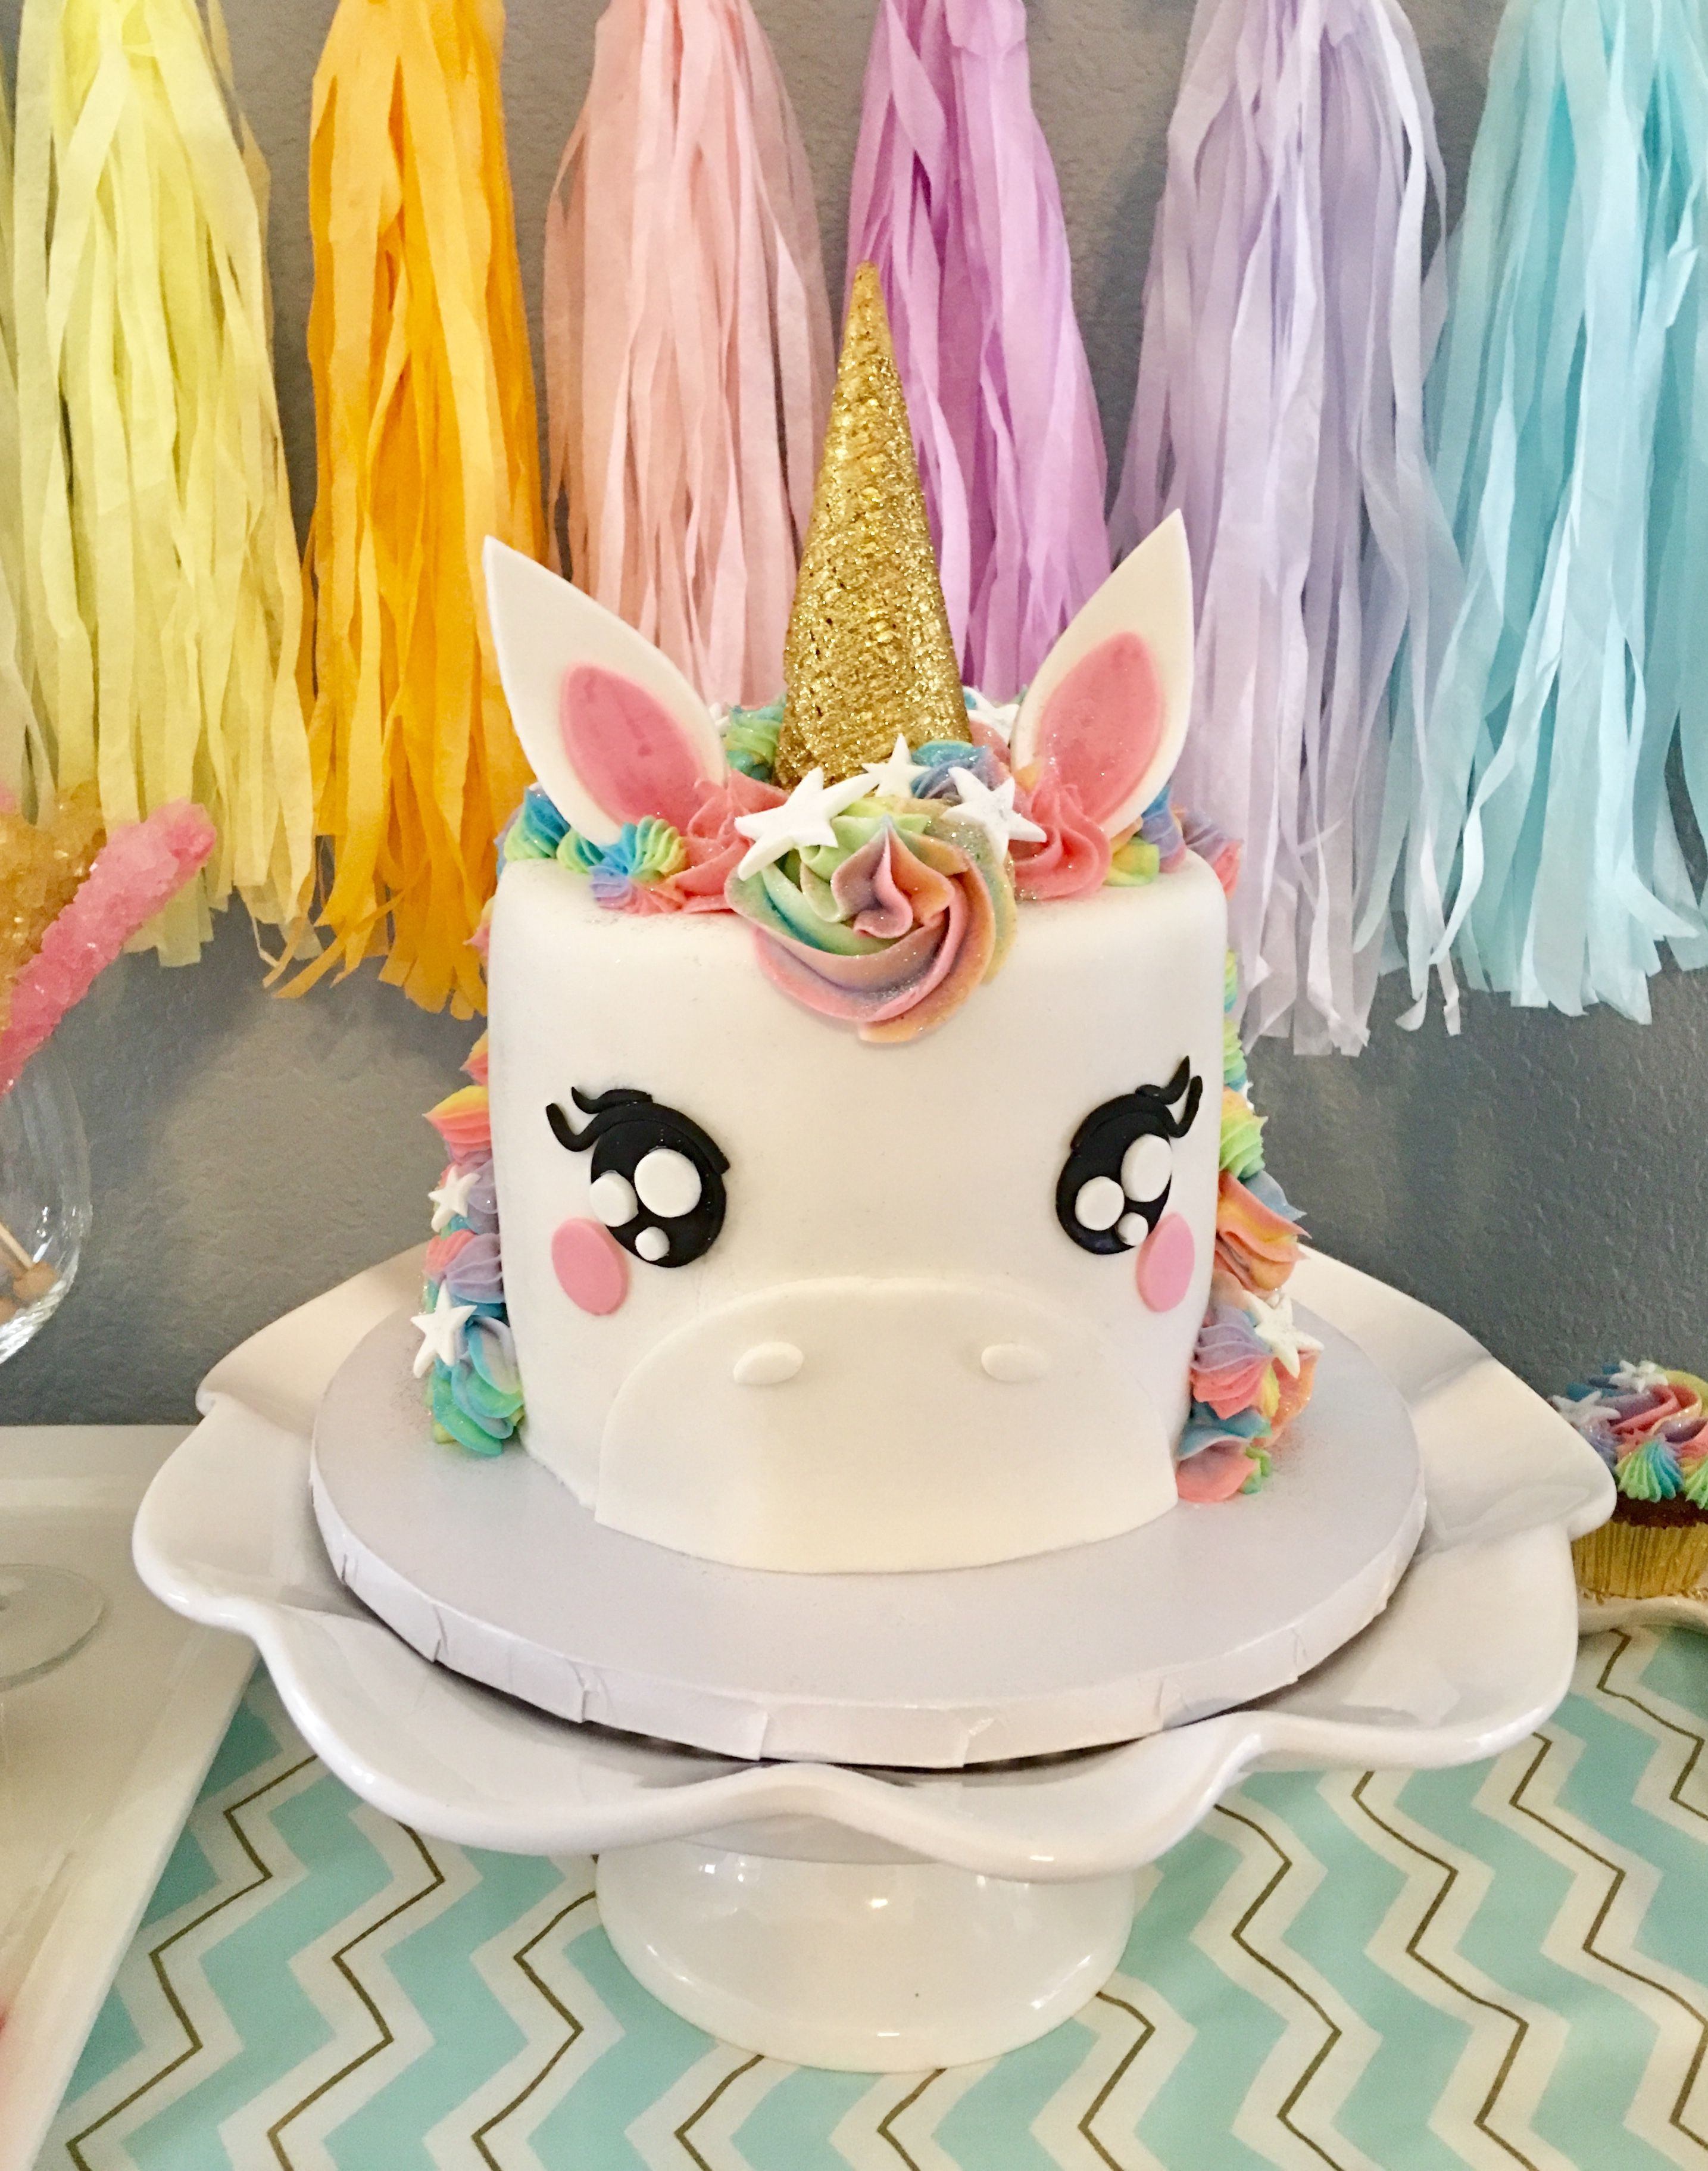 Pretty Rainbow Colored Unicorn Cake Ears And Horn Made Of Cereal